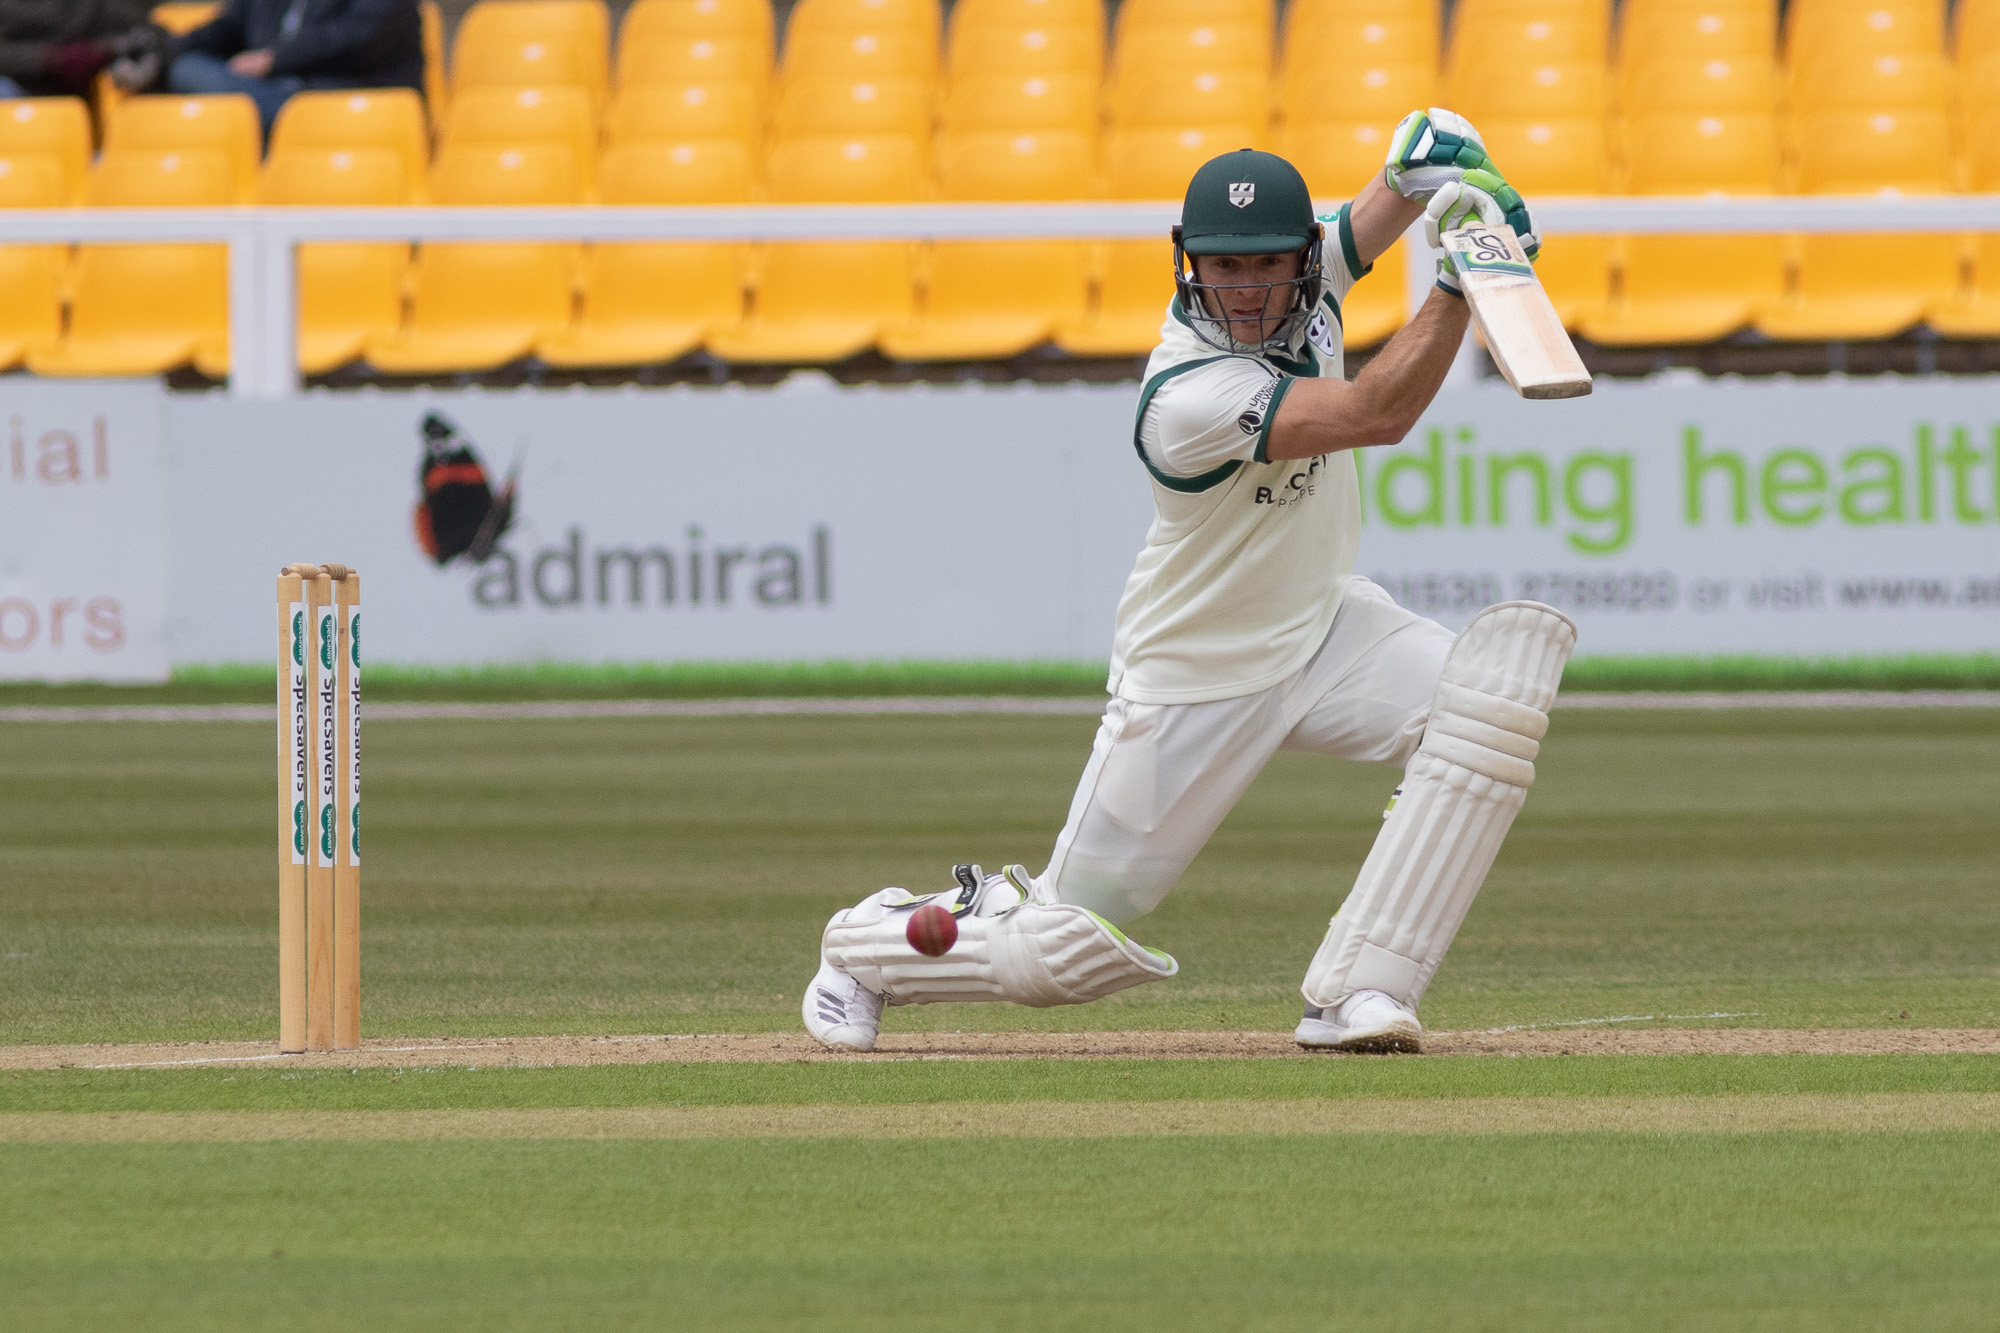 Captain Ben Cox drives for four on his way to 100 not out at Leicestershire. Picture: JOHN MALLETT